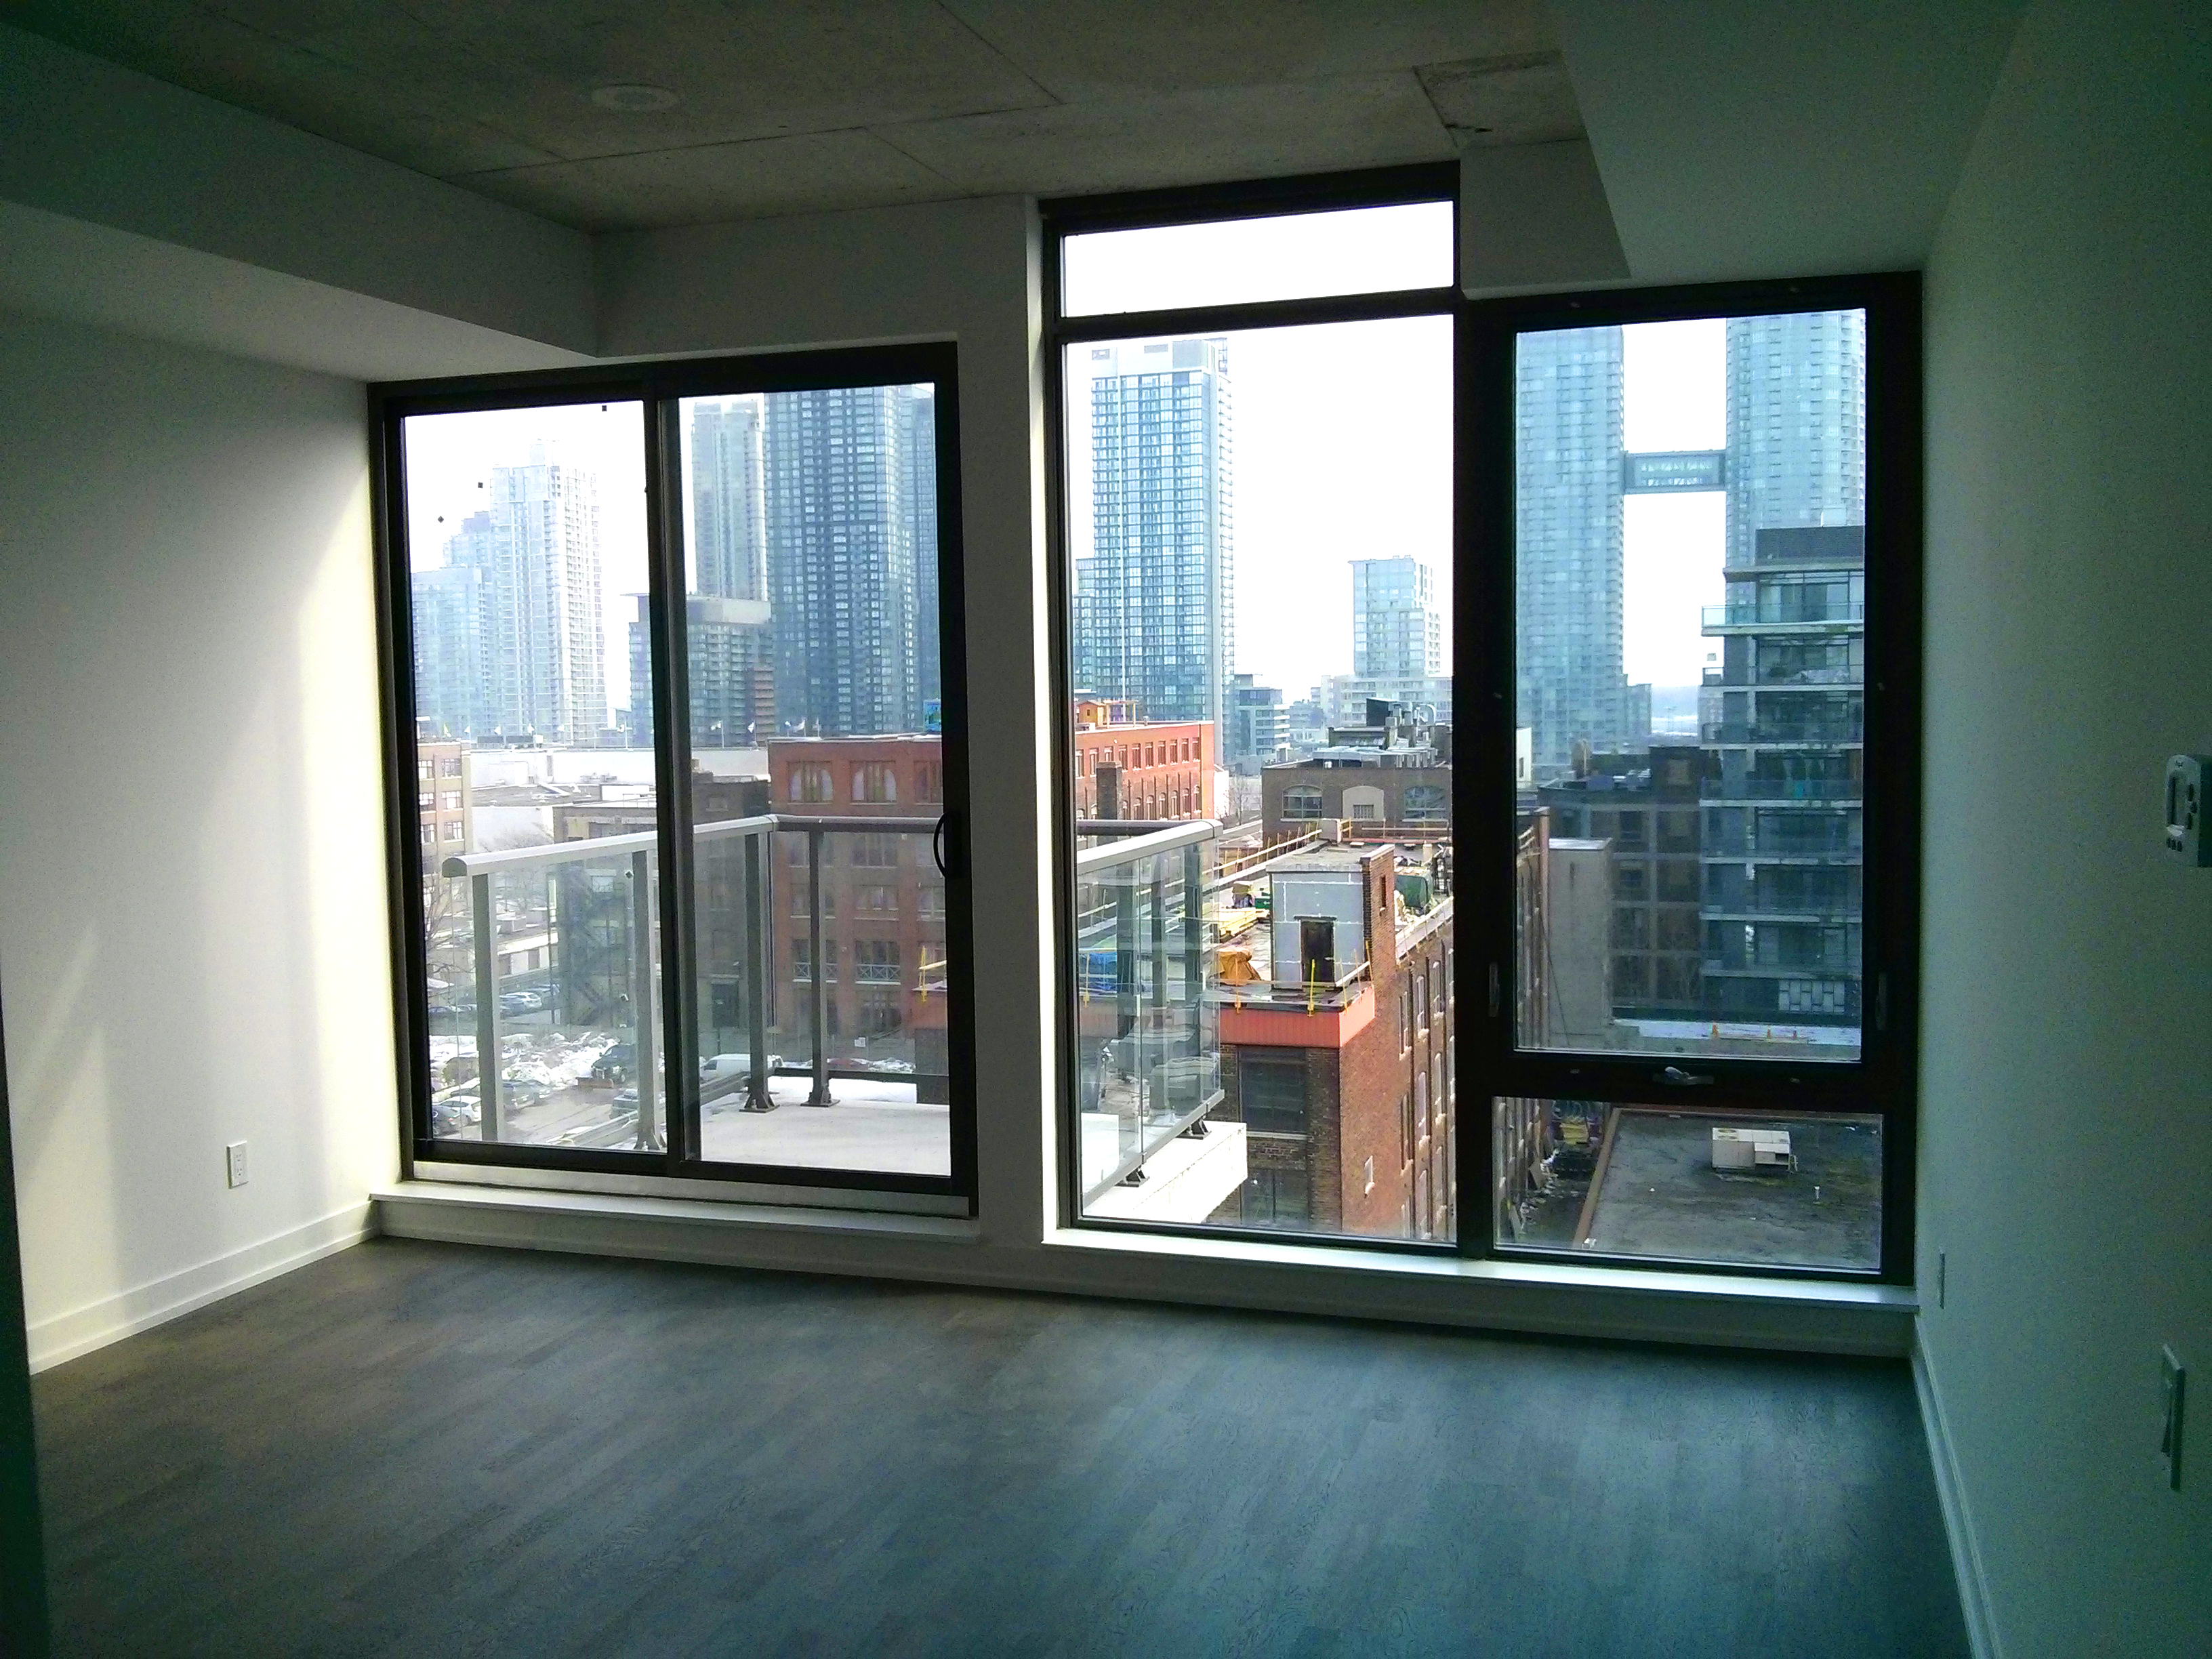 560 KING WEST - ONE BEDROOM 530 SQ FT - CONTACT YOSSI KAPLAN